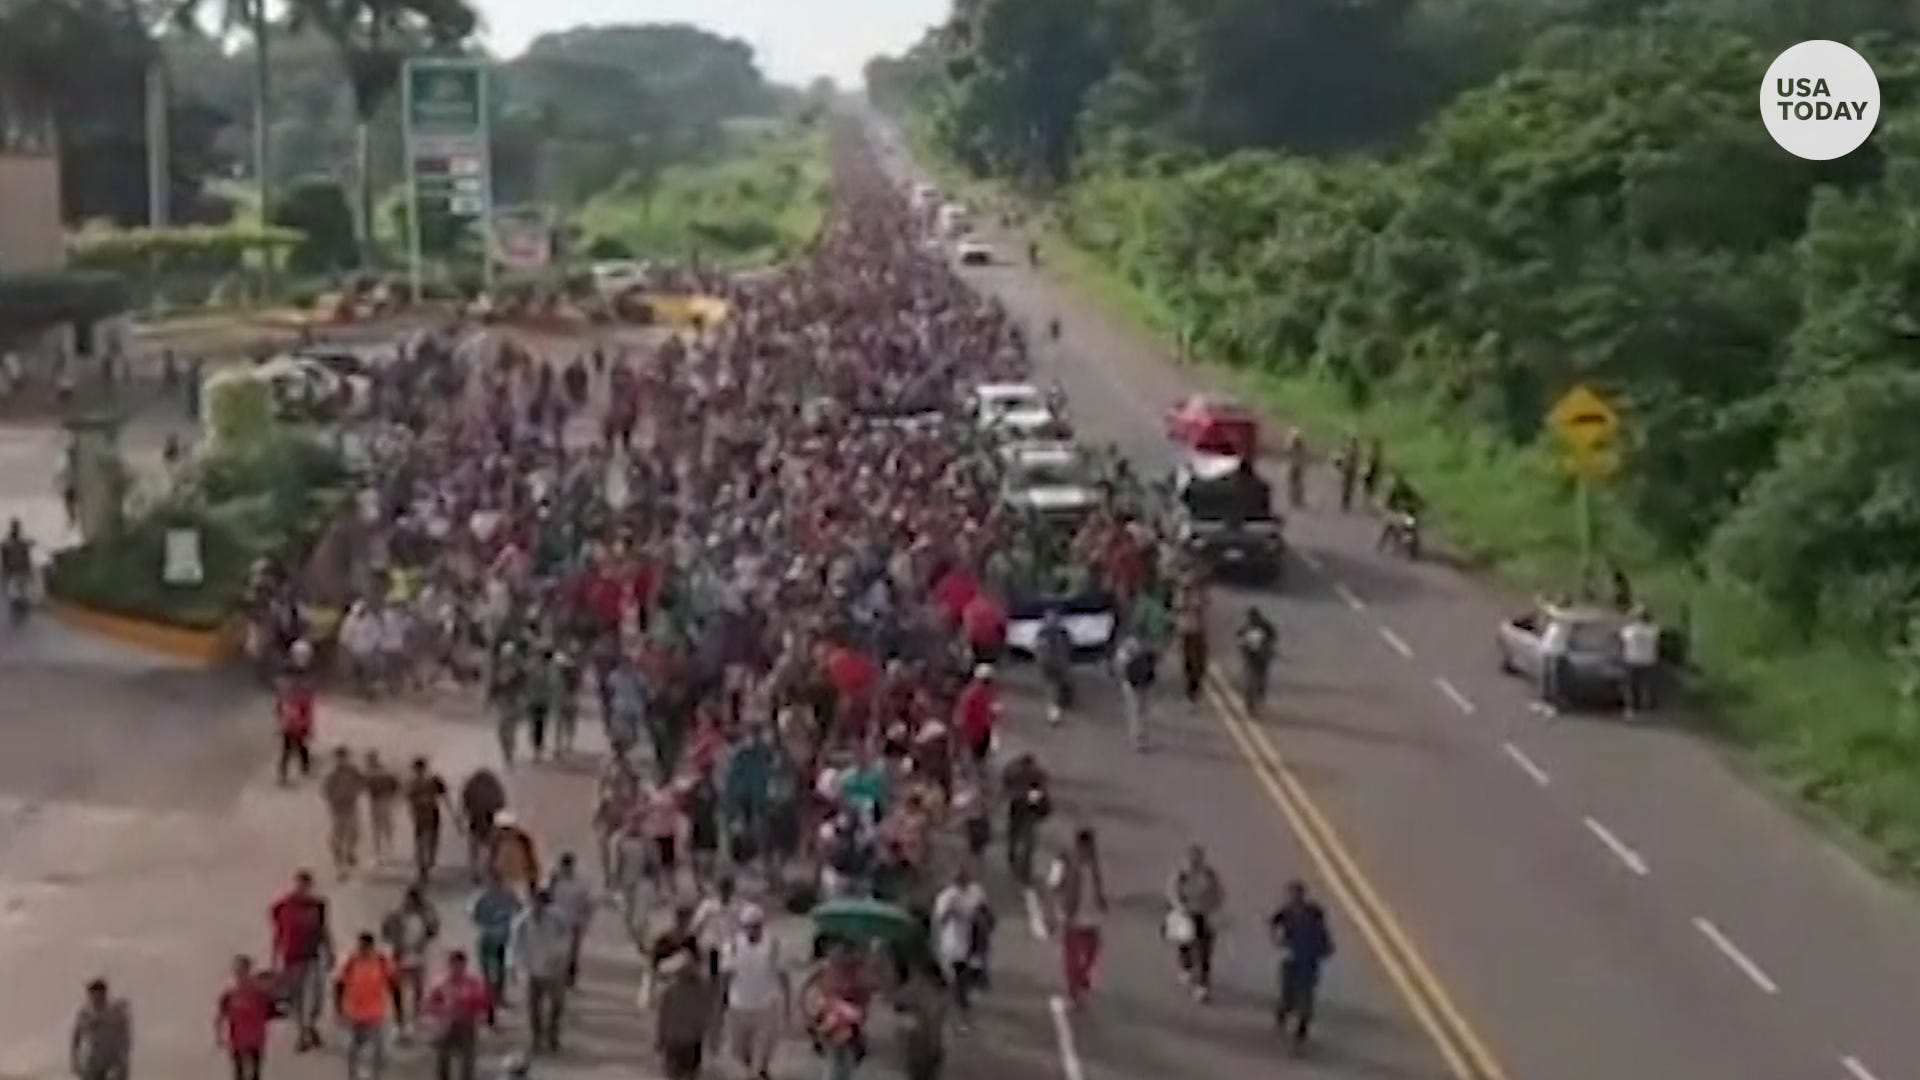 Caravan of Central American migrants grows in the thousands